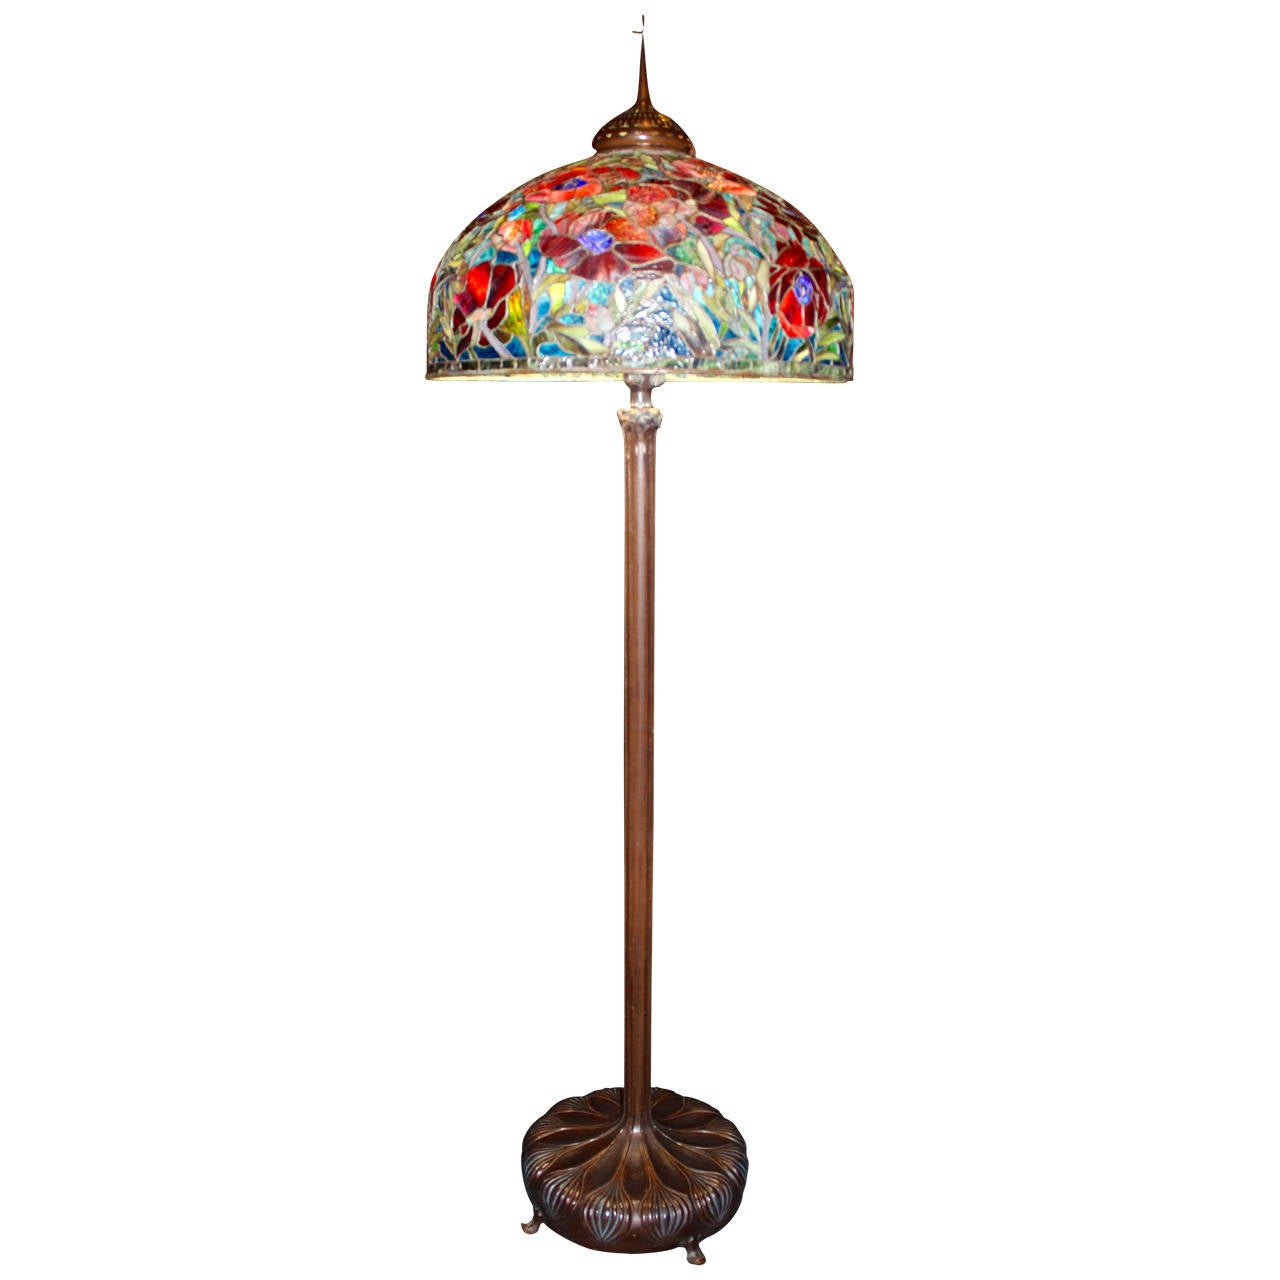 Oriental poppy tiffany style floor lamp for sale at 1stdibs for Tiffany style arroyo floor lamp